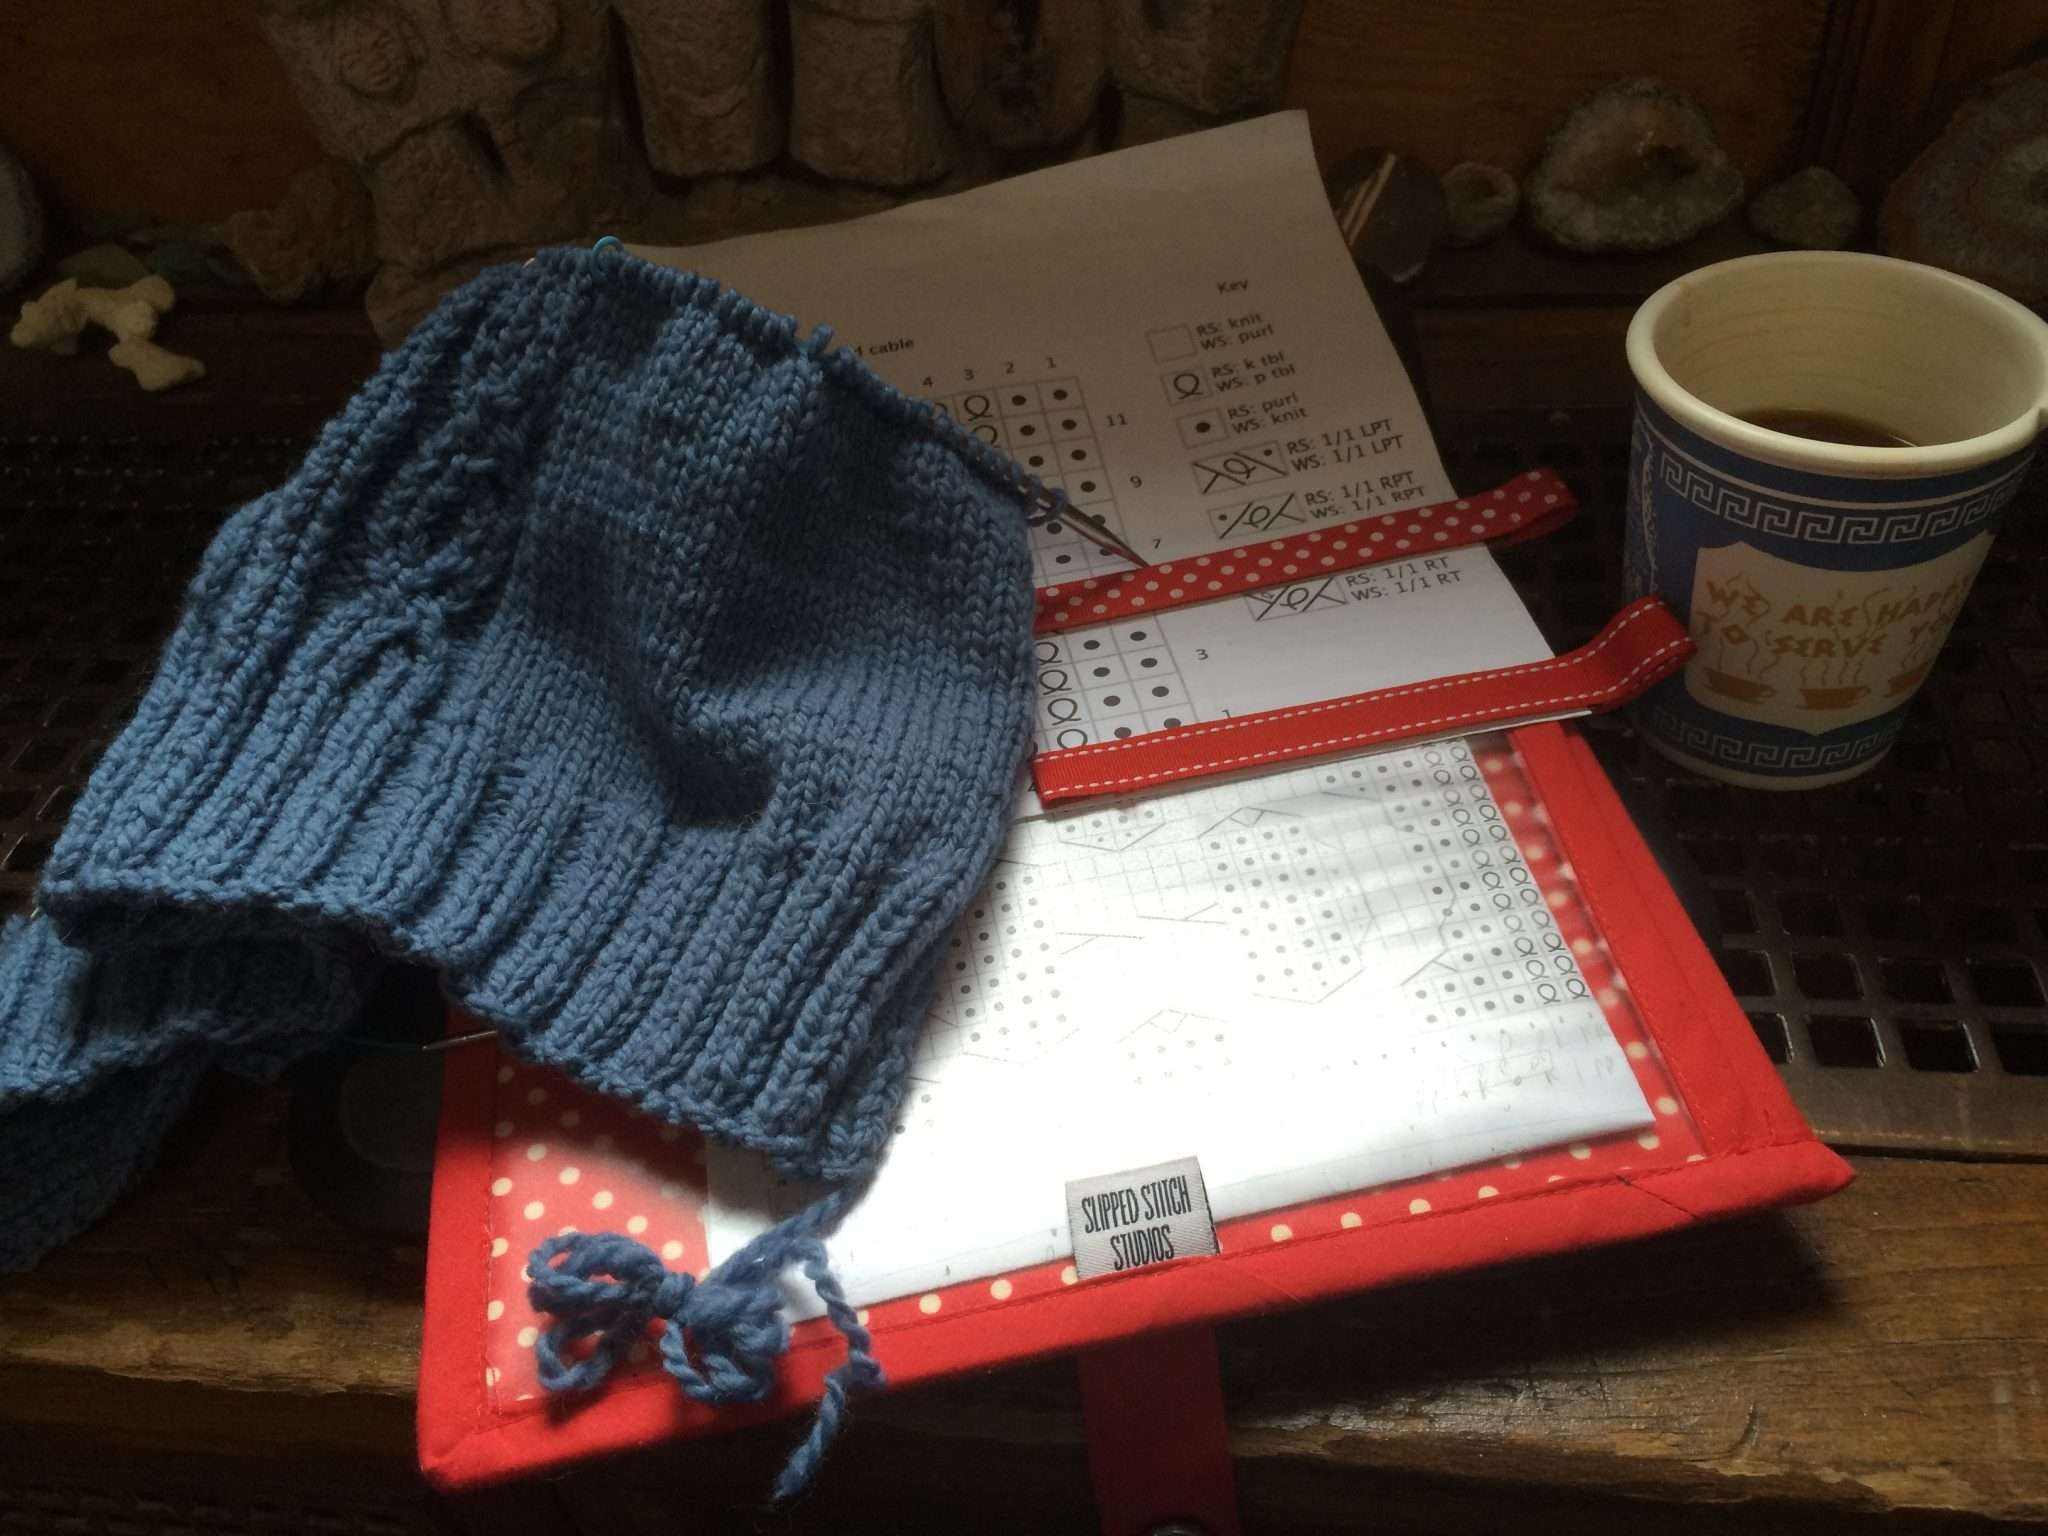 Knitting Designer Blog - Diverging Paths Pullover in progress